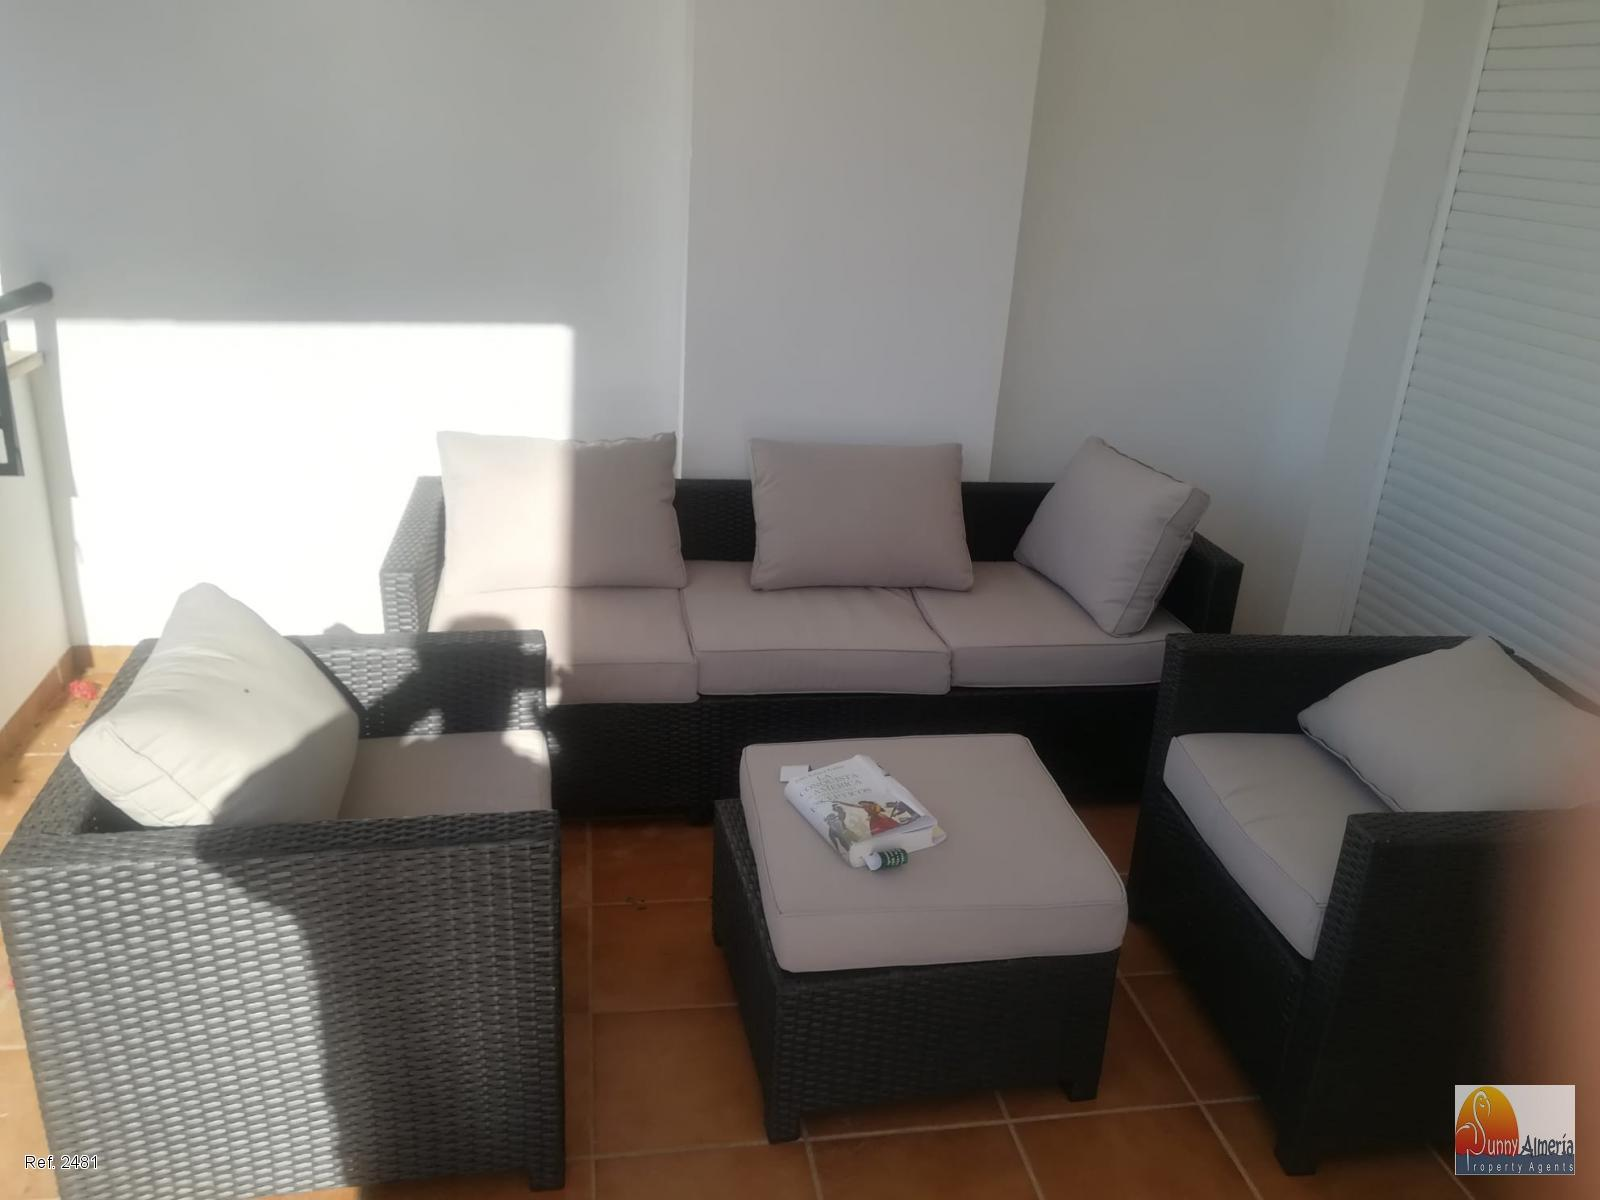 Luxury Apartment for rent  in Carretera Ciudad de Cadiz 0 (Roquetas de Mar)